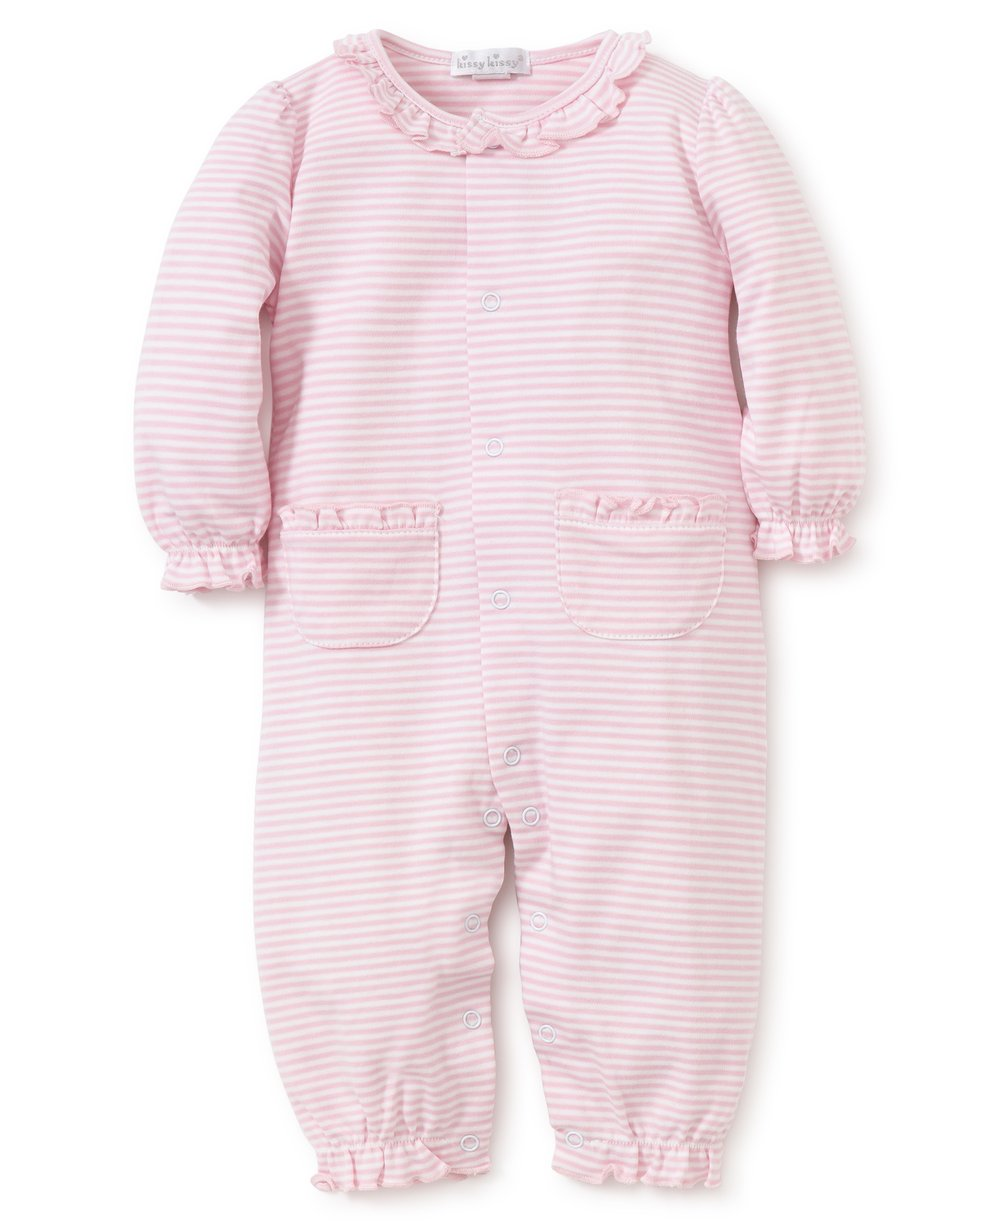 Kissy Kissy Simple Stripes Playsuit (Pink)